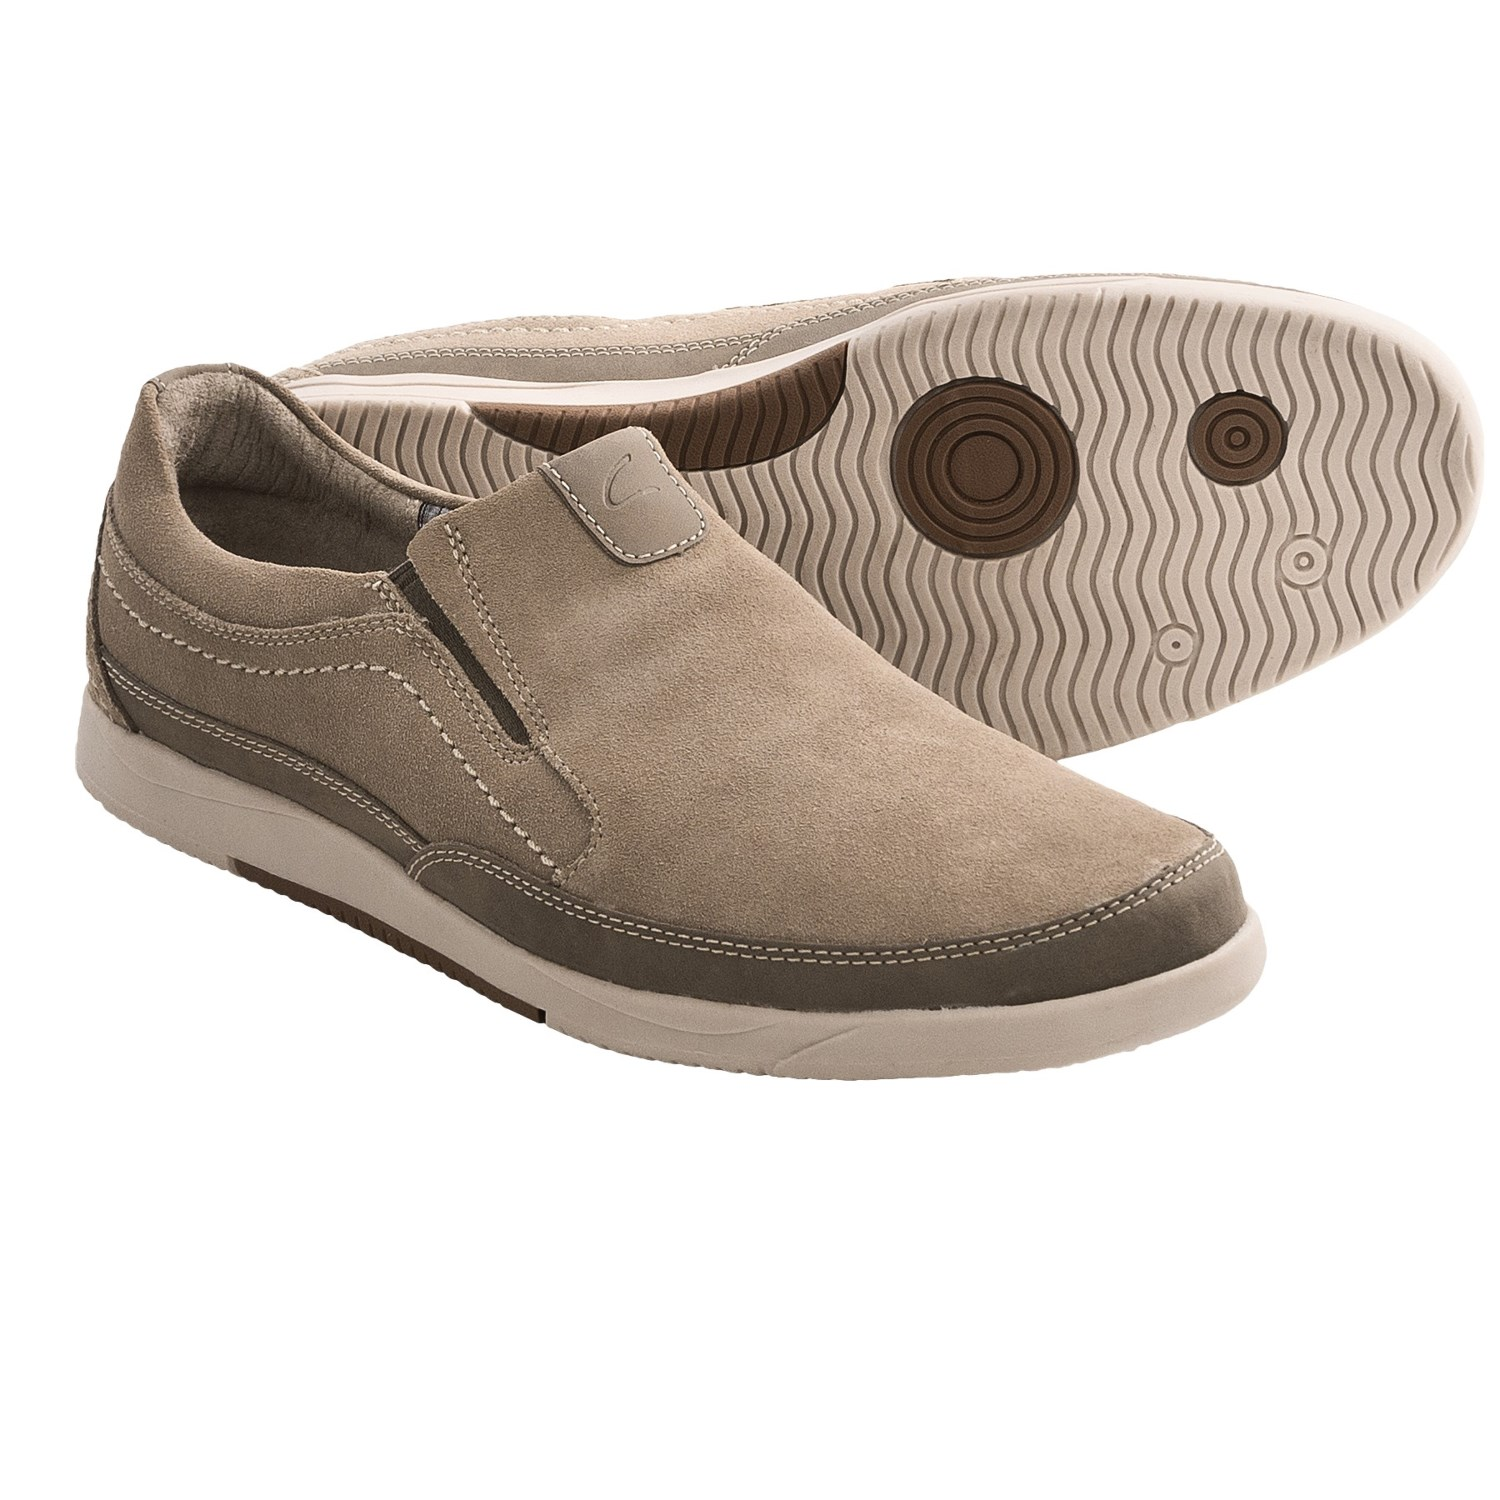 Clarks Vulcan Remus Shoes - Slip-Ons (For Men) in Taupe Leather